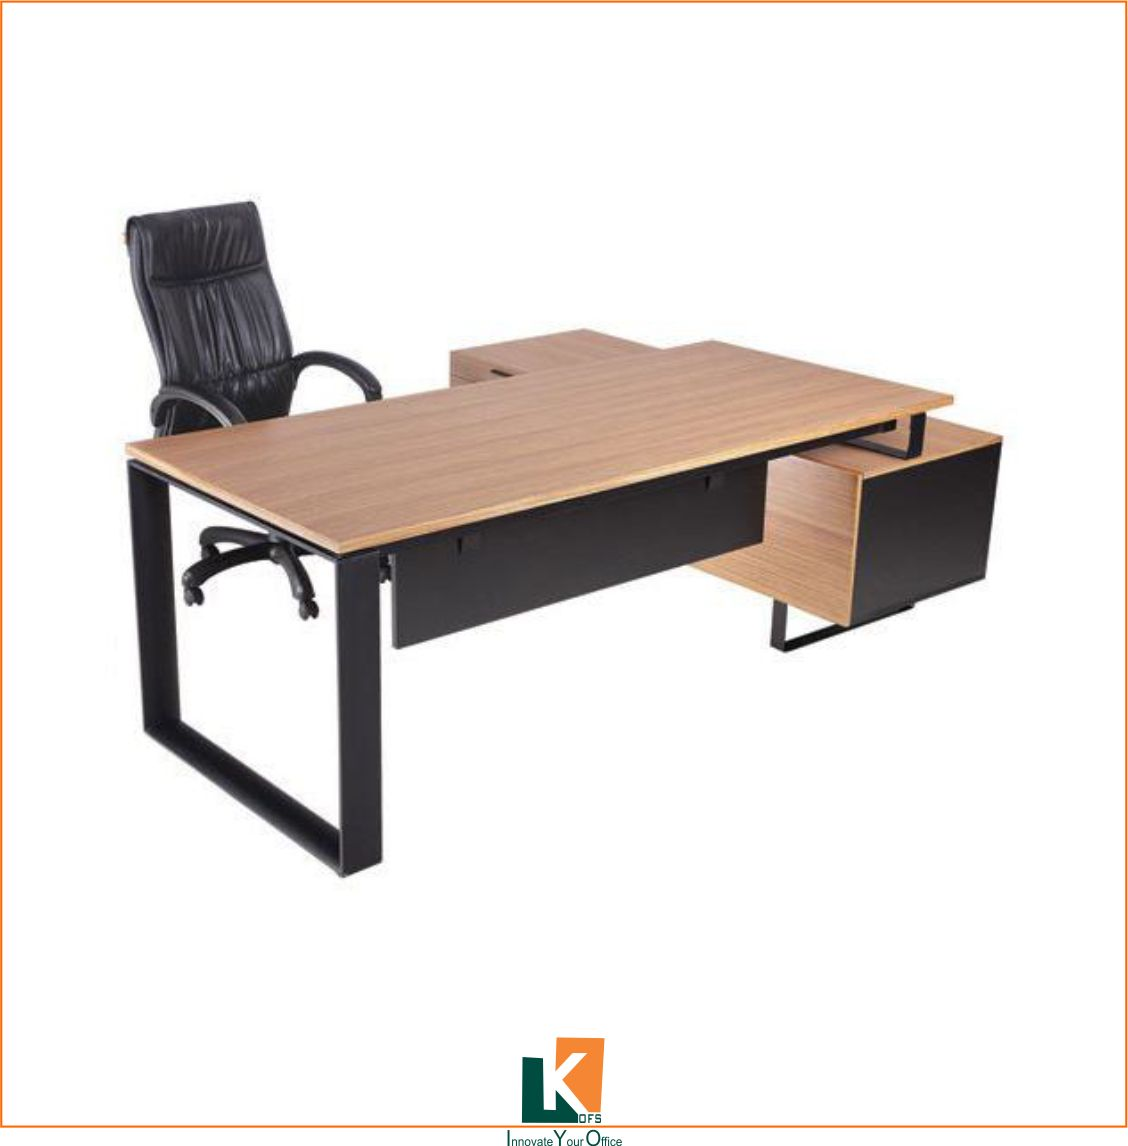 Modular office furniture |Chairs| KOFS| Easy Assemble